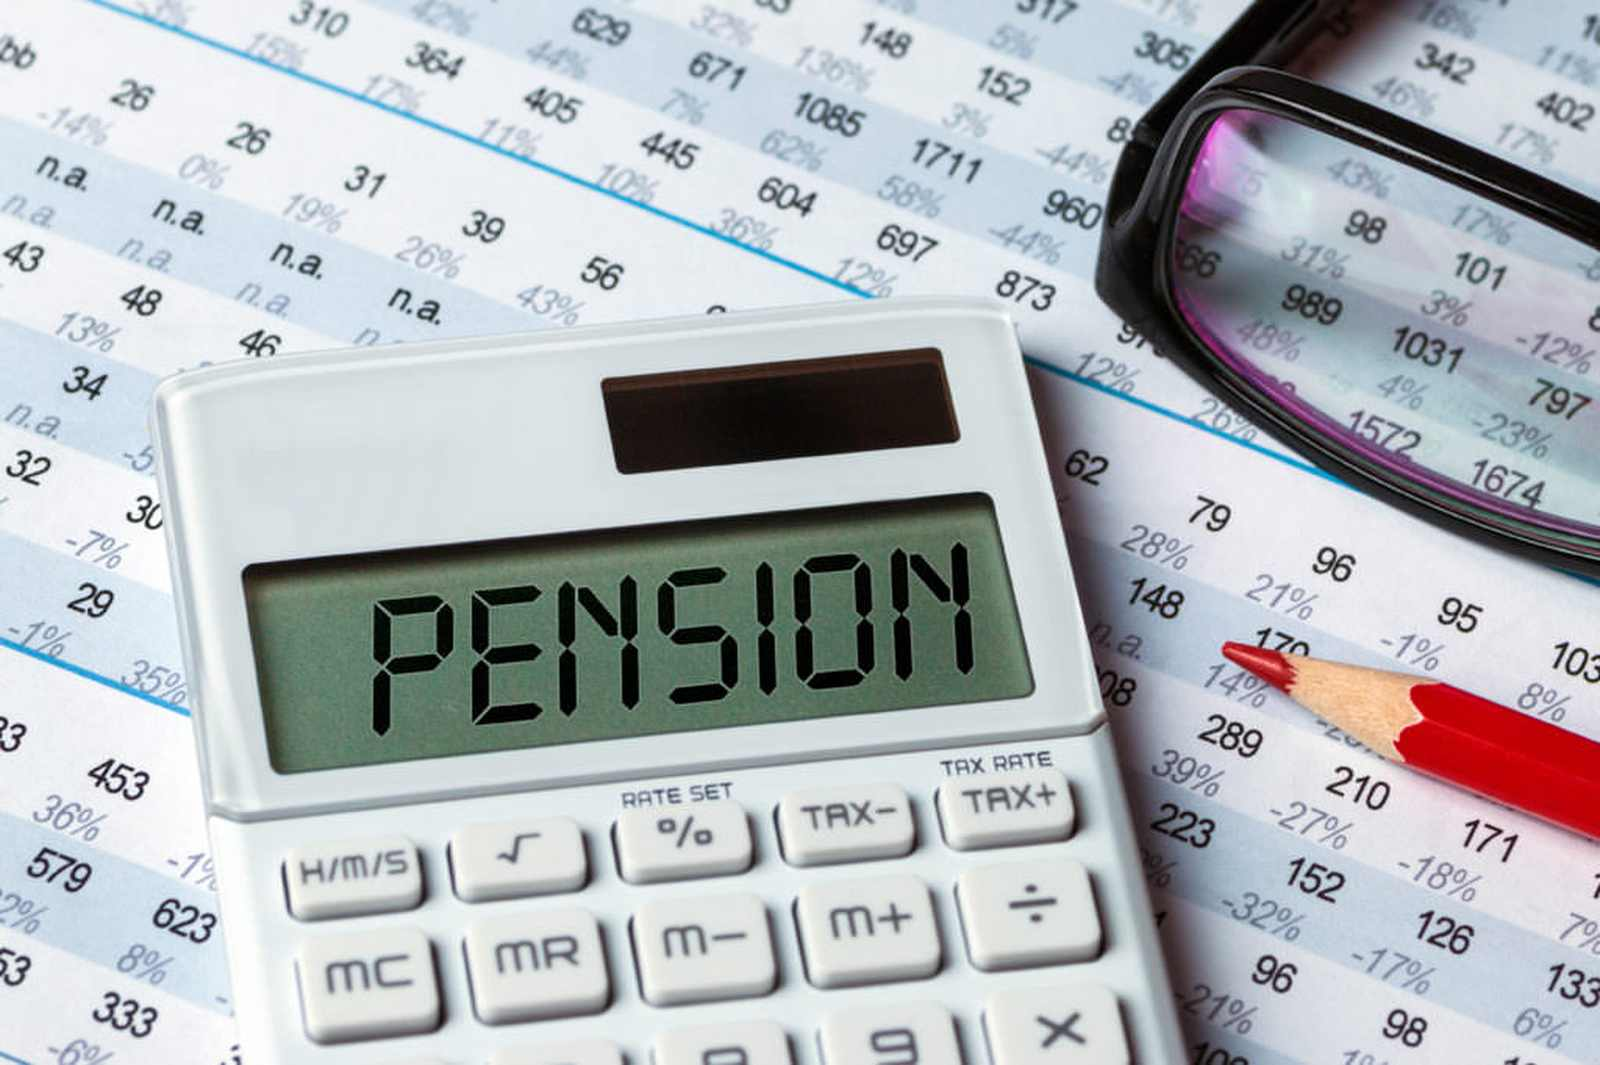 The Pension Gap